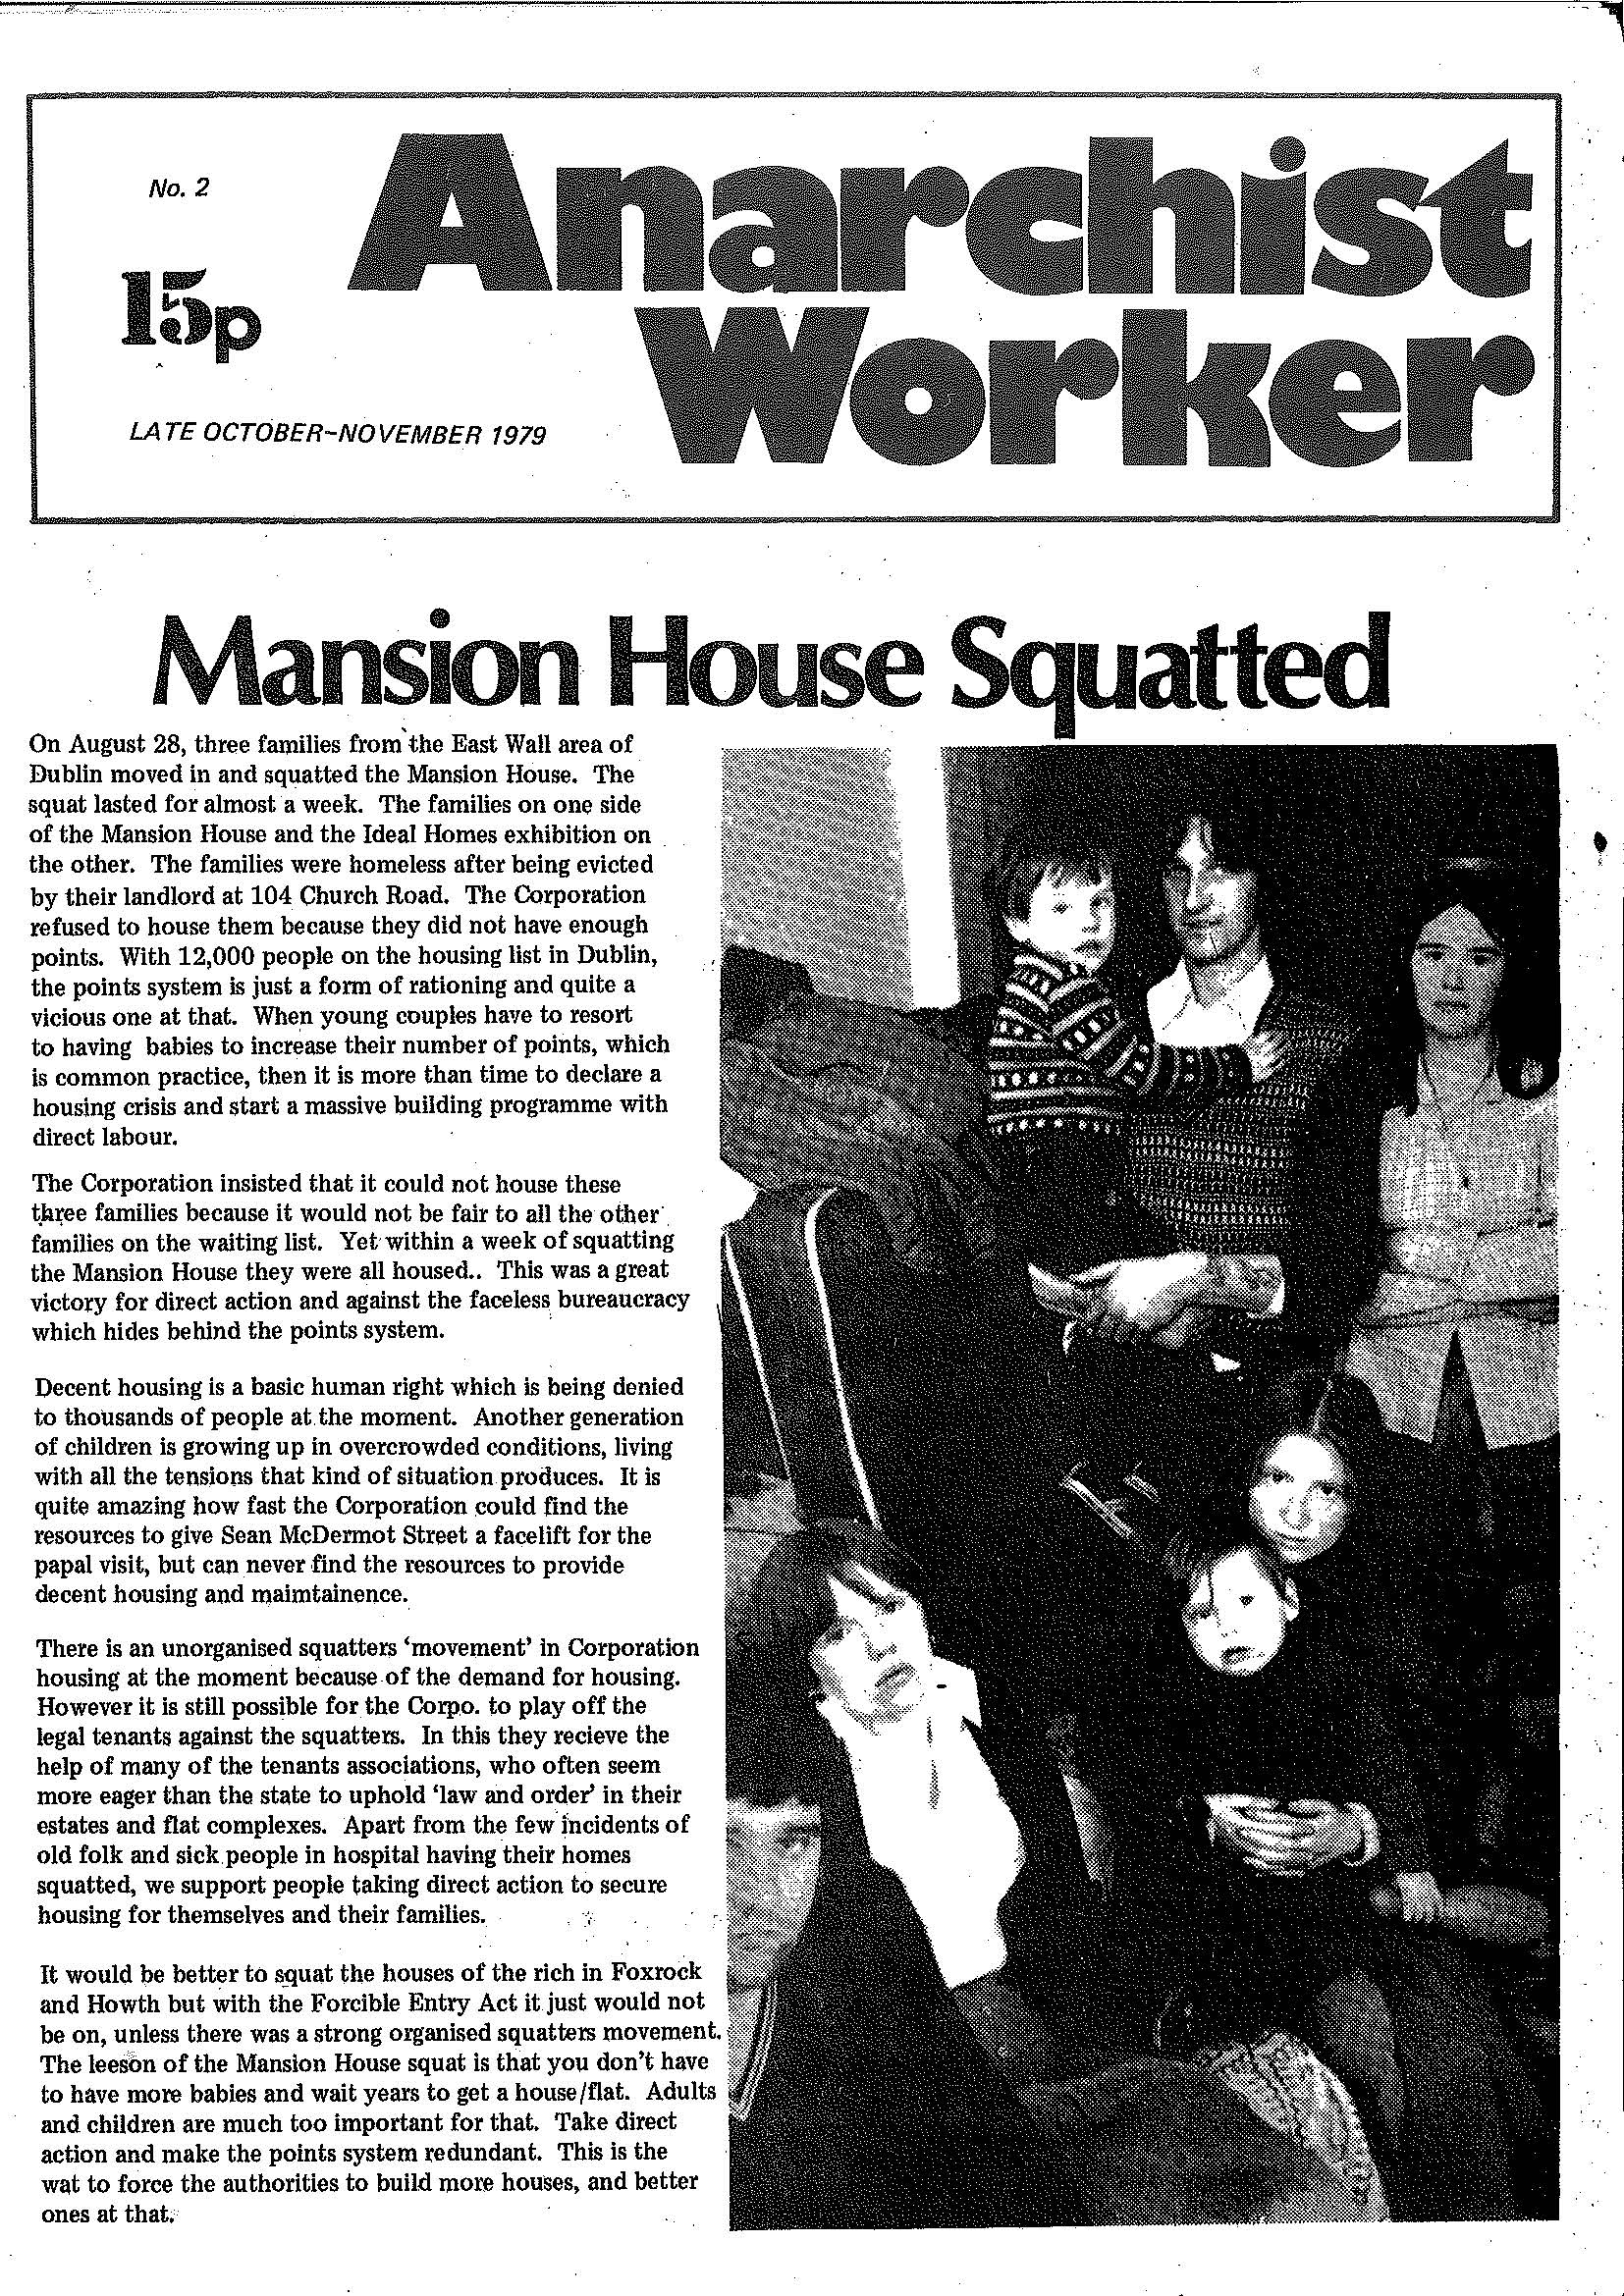 ANARCHIST WORKER COVER